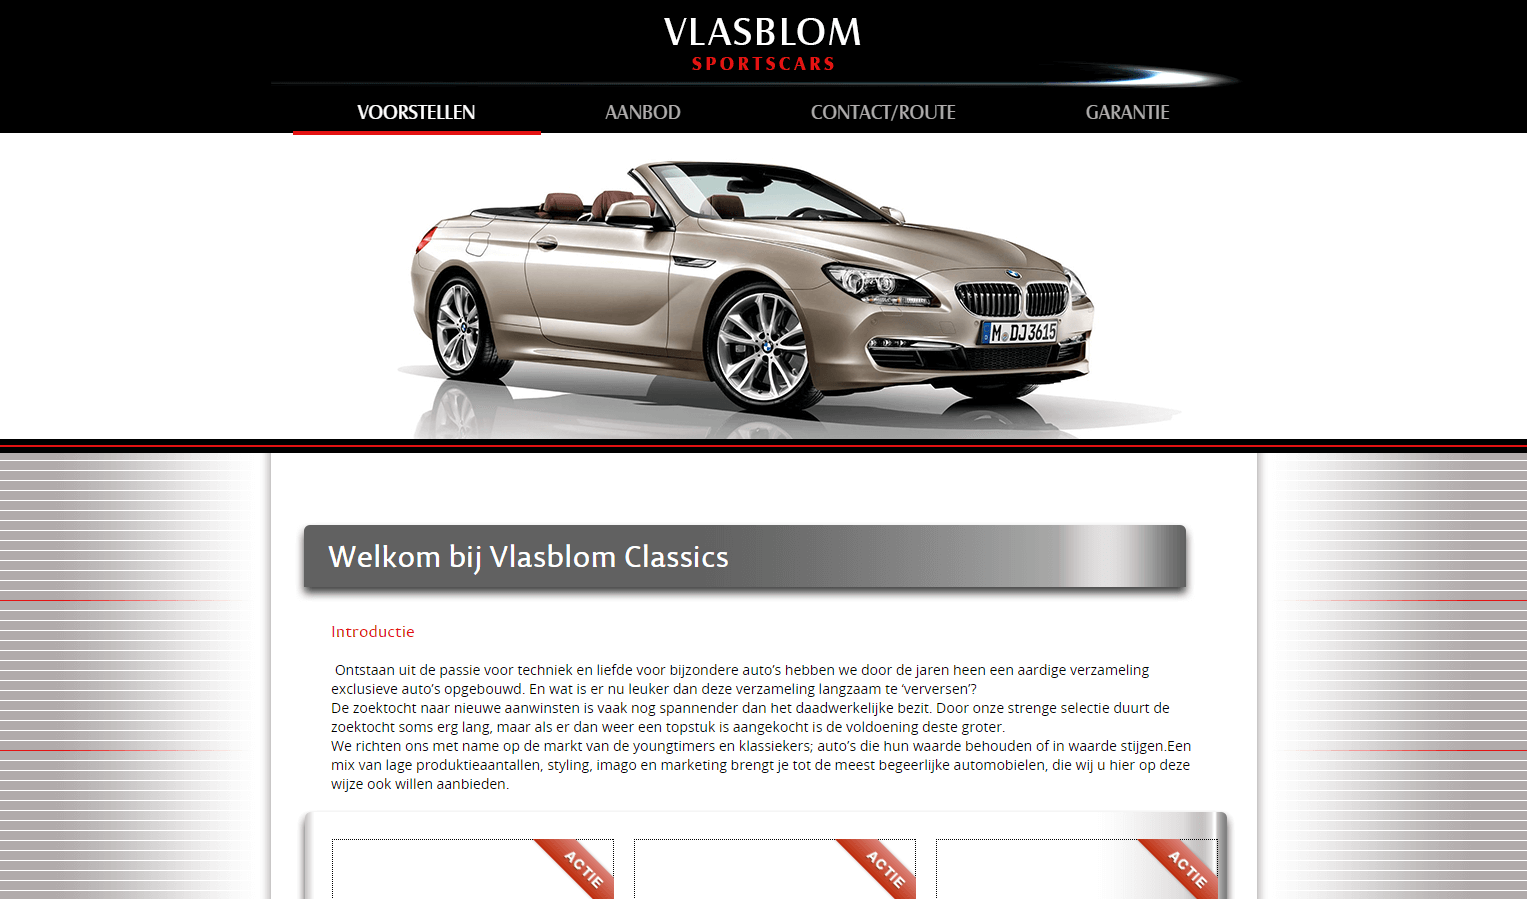 Vlasblom Sportscars website